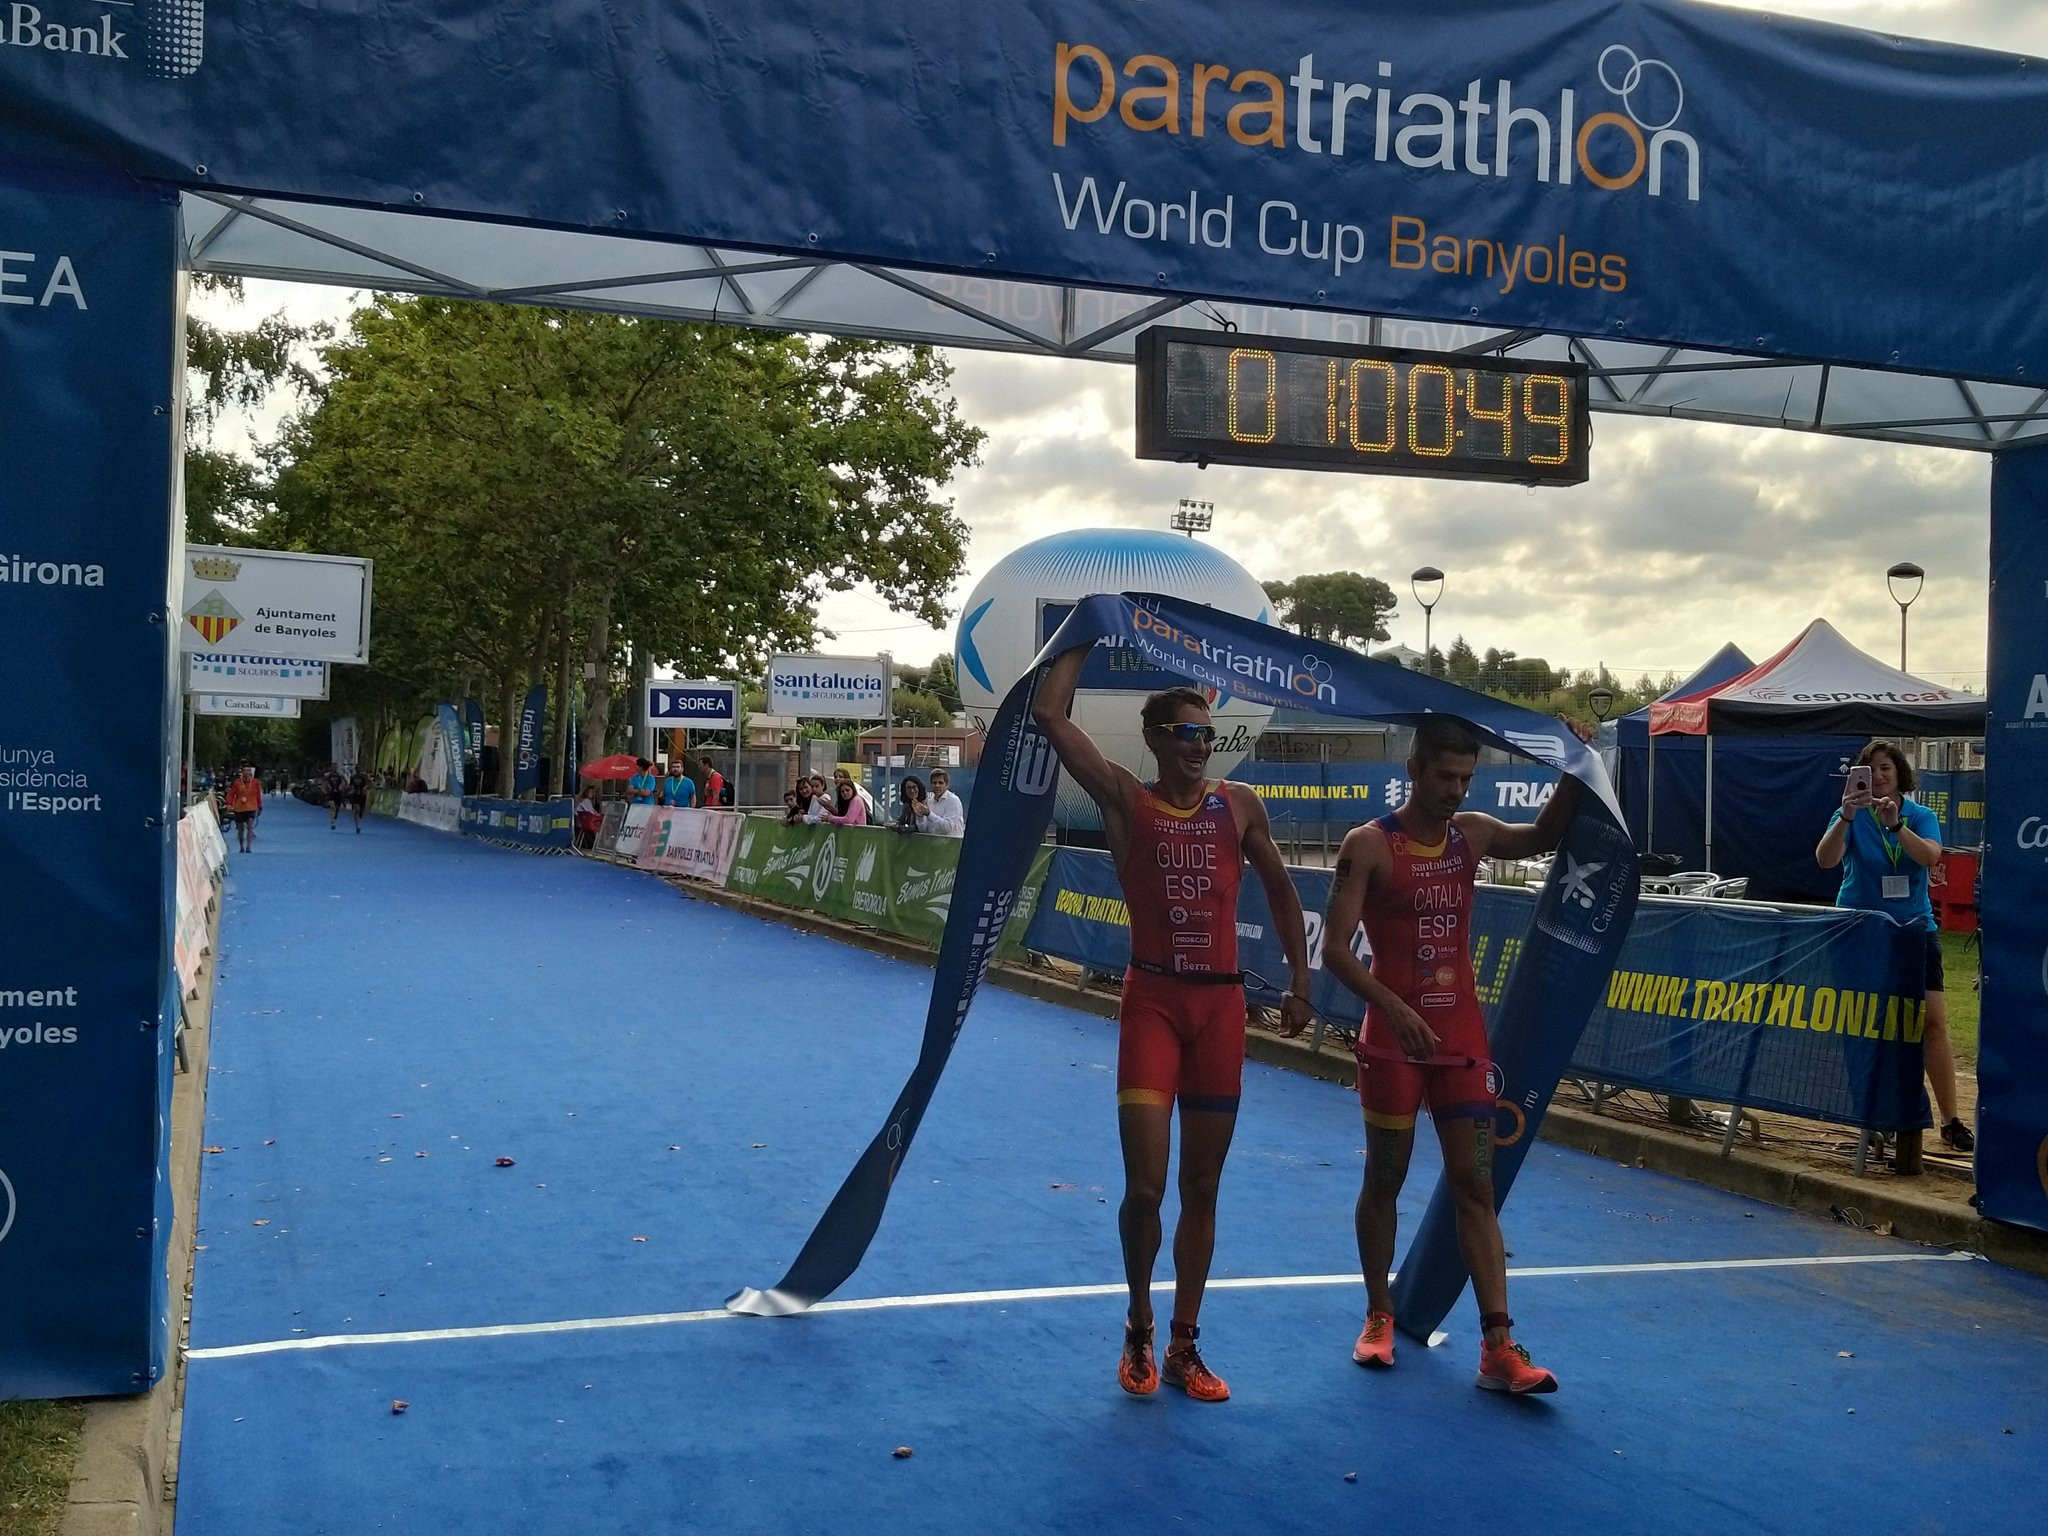 Spain dominate ITU Paratriathlon World Cup in Banyoles